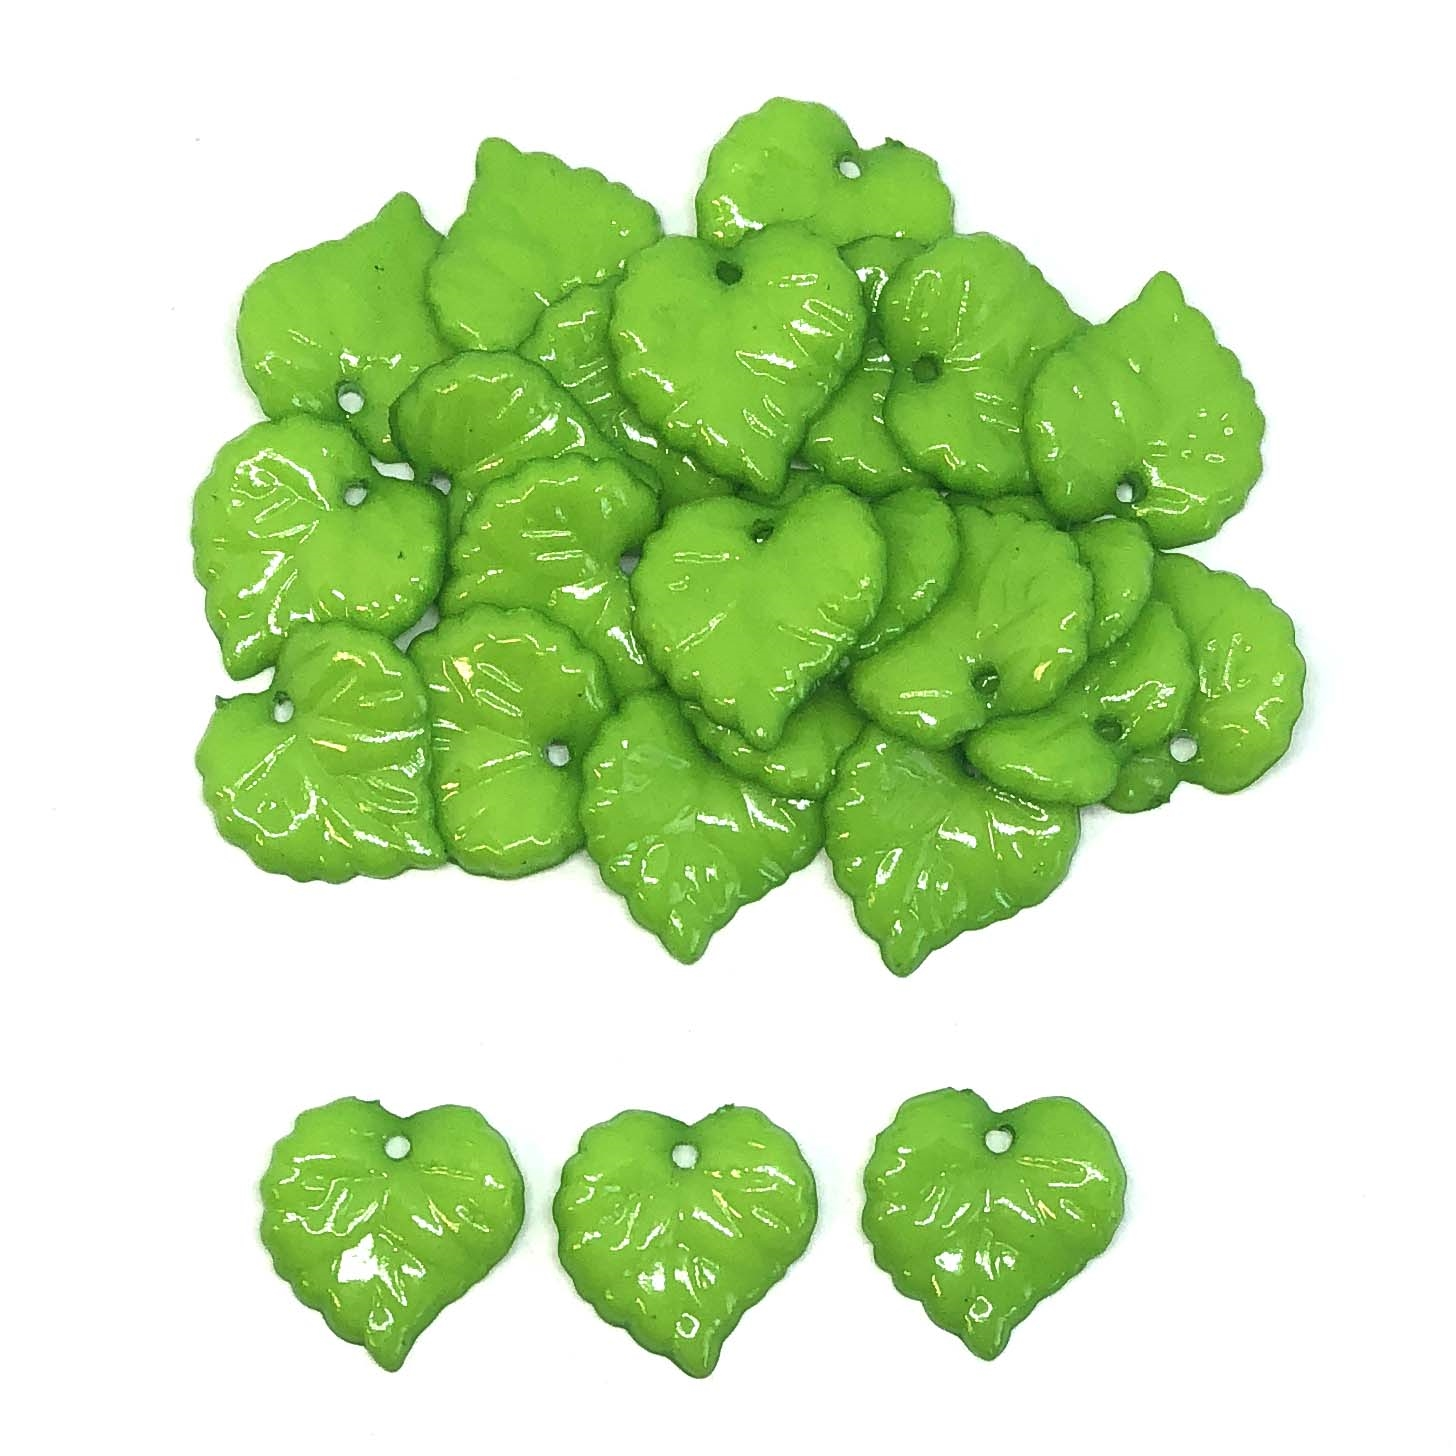 acrylic leaf pendants, leaf charms, yellow green, plastic leaves, 16mm, vintage supplies, jewelry making, jewelry supplies, jewelry findings, B'sue Boutiques, 08343, leaves